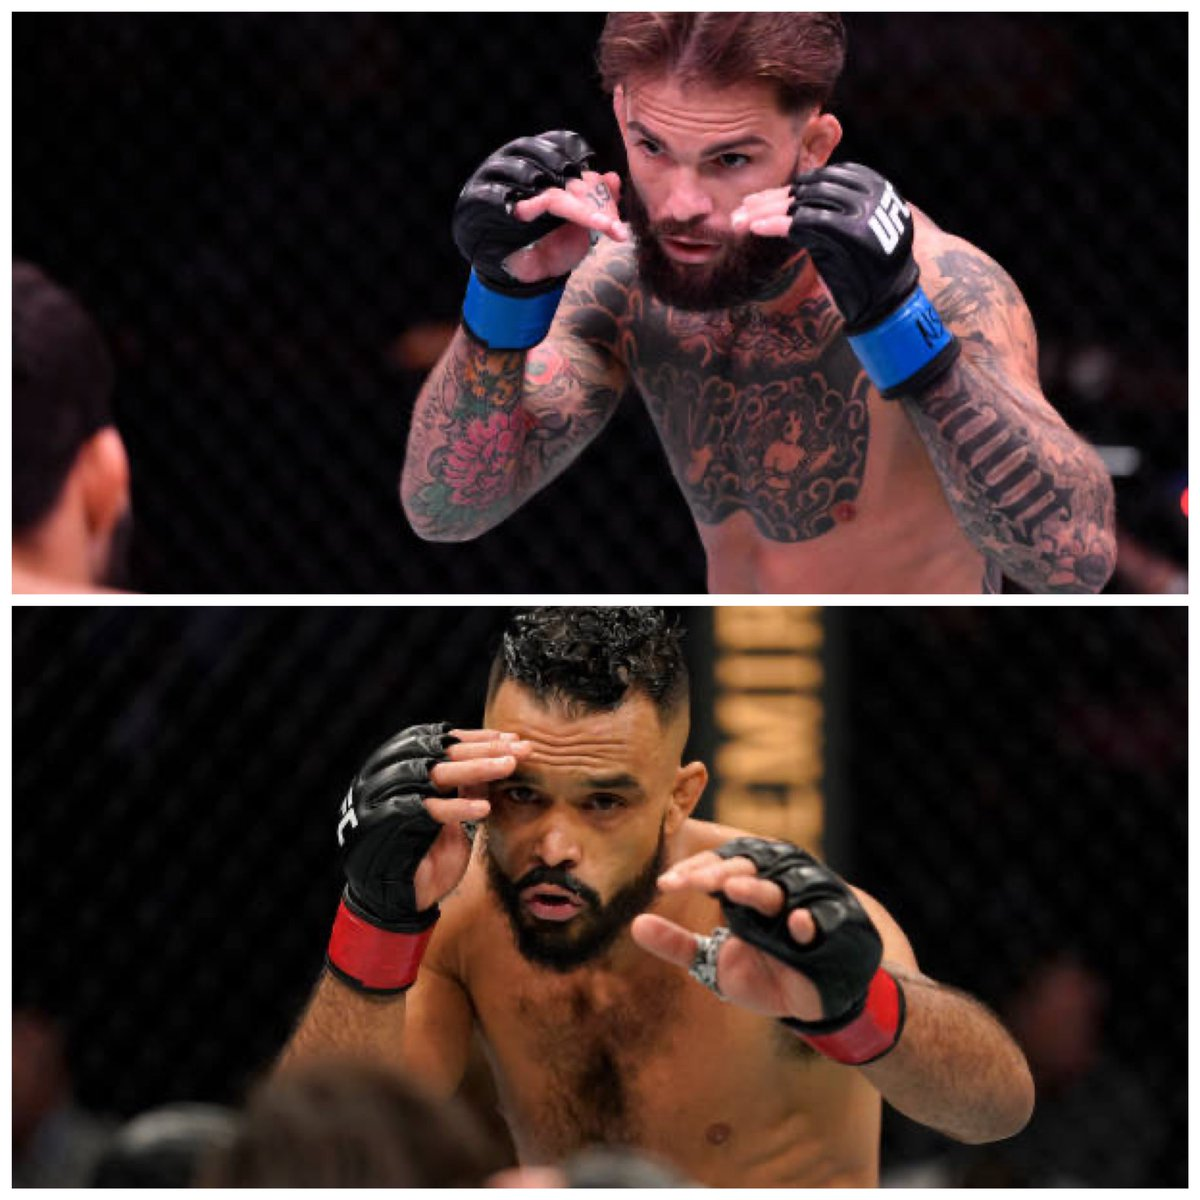 Per sources, Cody Garbrandt (@Cody_Nolove) vs. Rob Font (@RobSFont). May 22. Five rounds. Main event. Sick fight ... Who you got? https://t.co/mAWt96o1jk